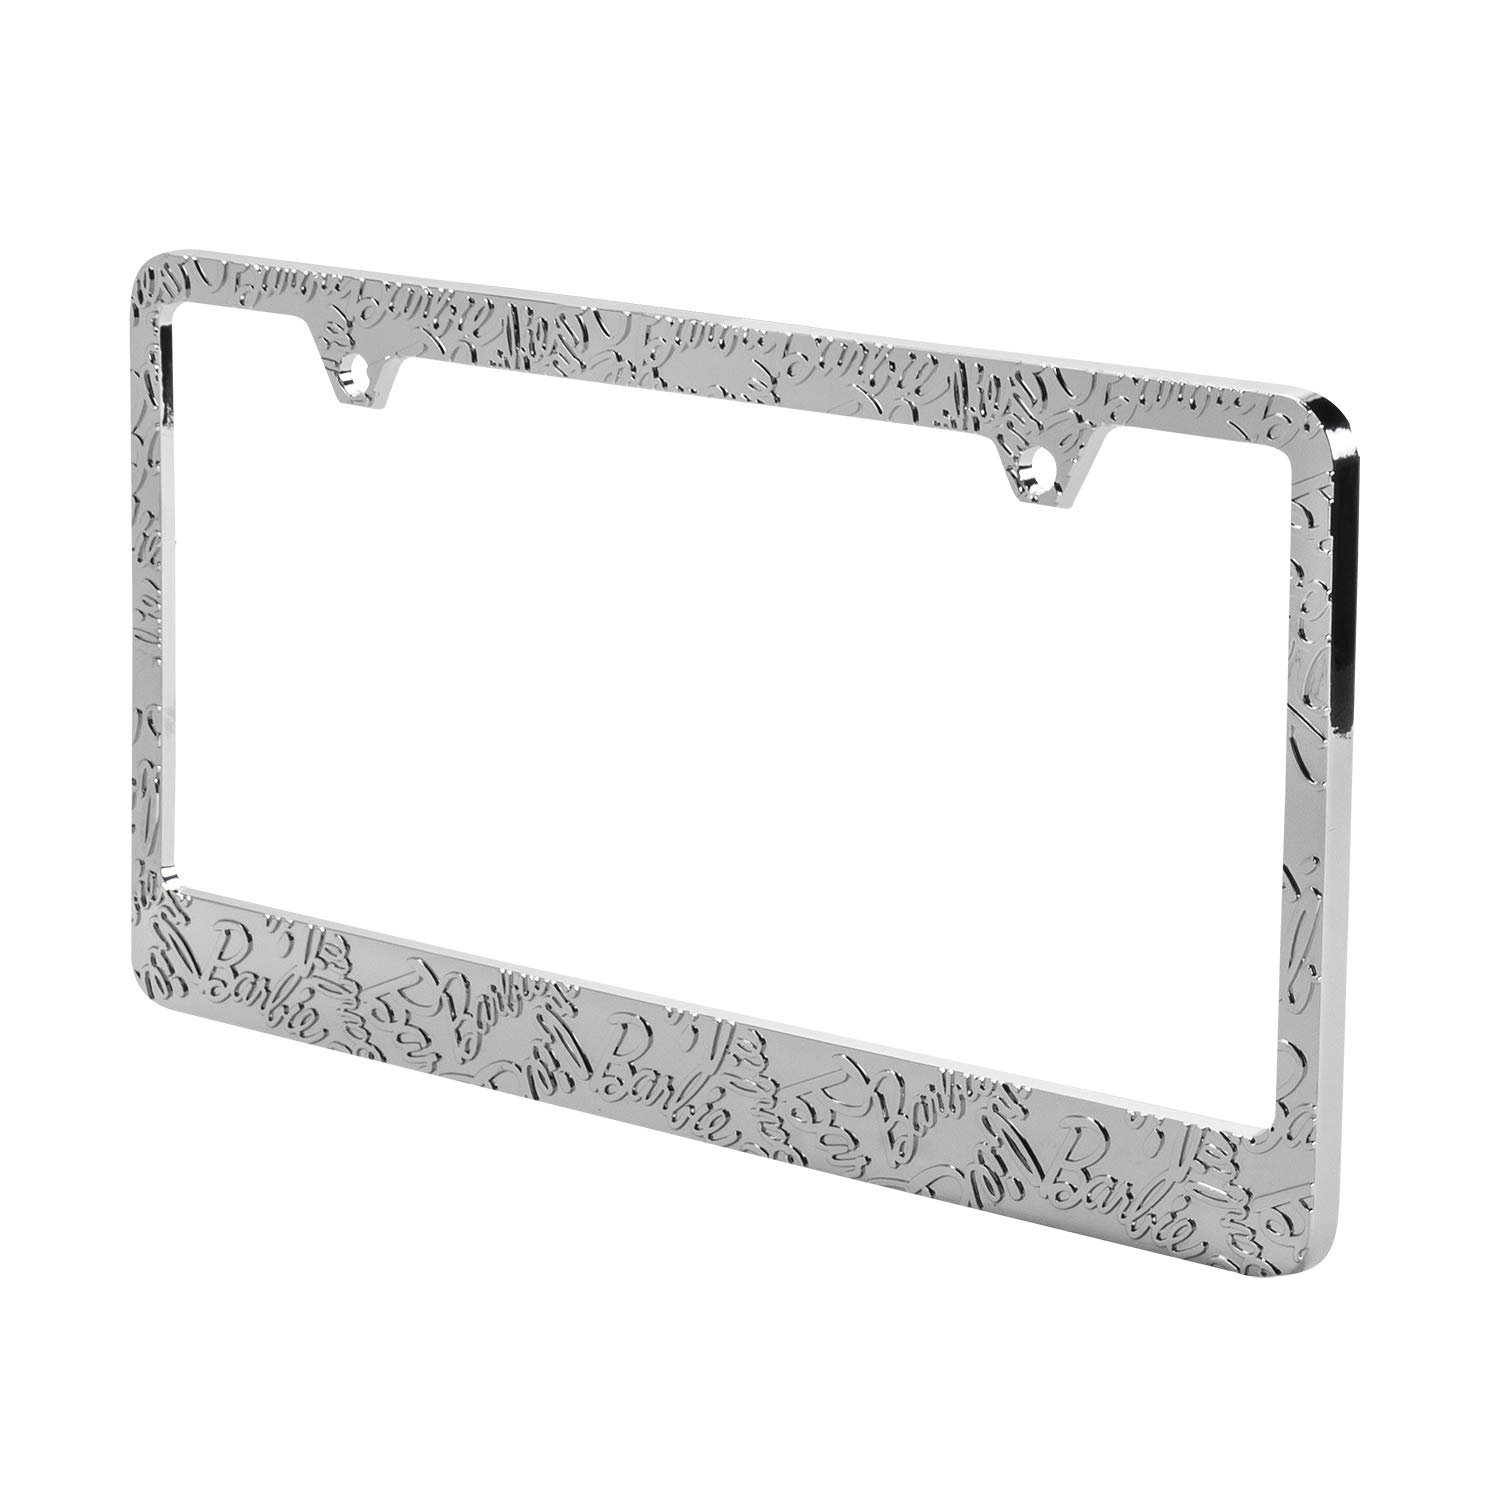 Terisass License Plate Frames Universal 180/° Angle Adjustable Car License Registration Plate Tag Holder Carbon Fiber Tail Light Bracket Mount License Plate Bracket Tag Holder